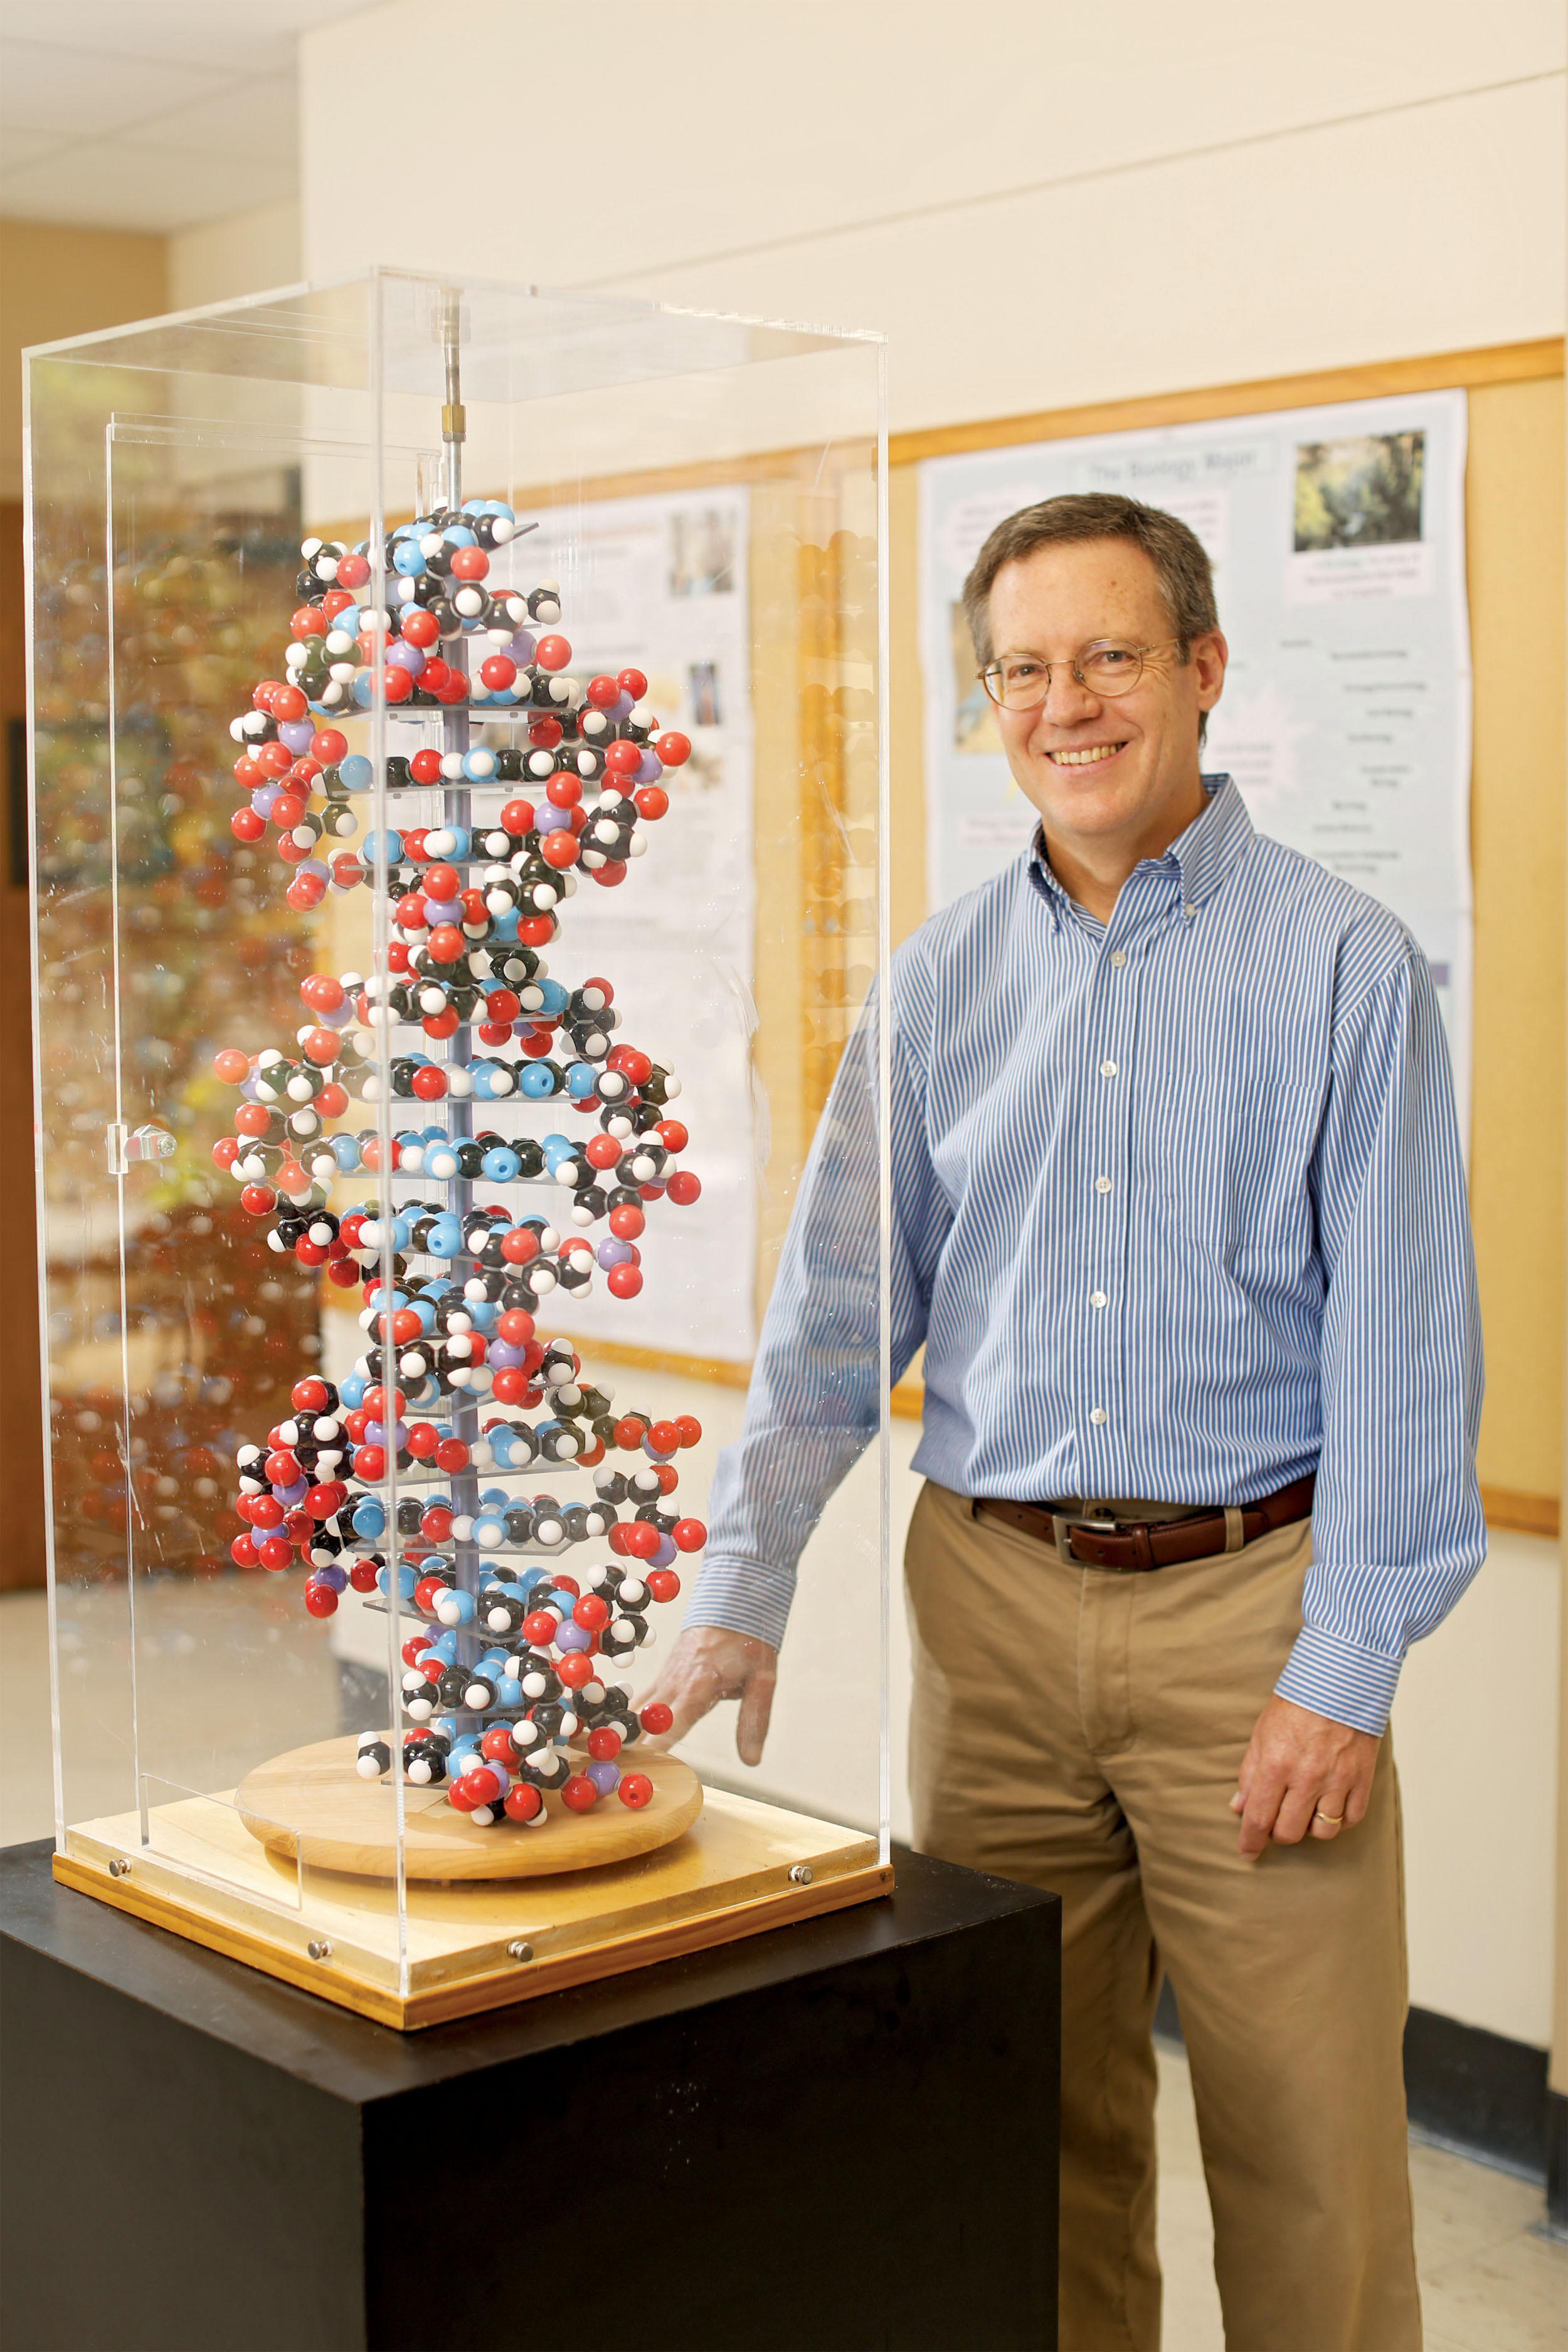 A man in a blue shirt stands next to a model of DNA.